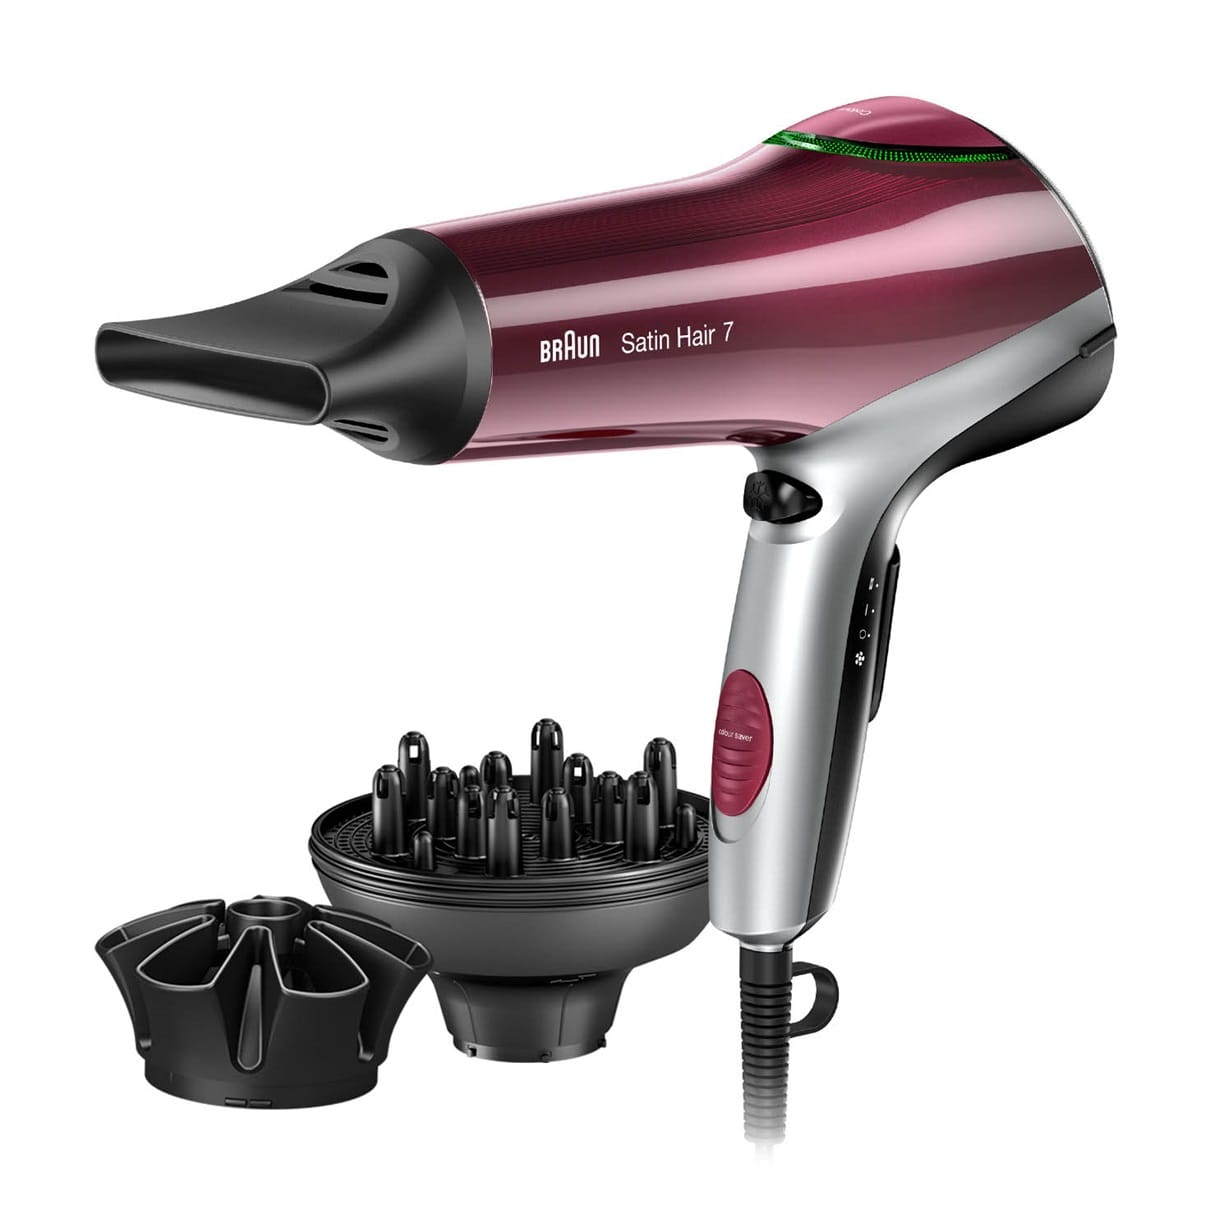 Braun Satin Hair 7 Color HD770